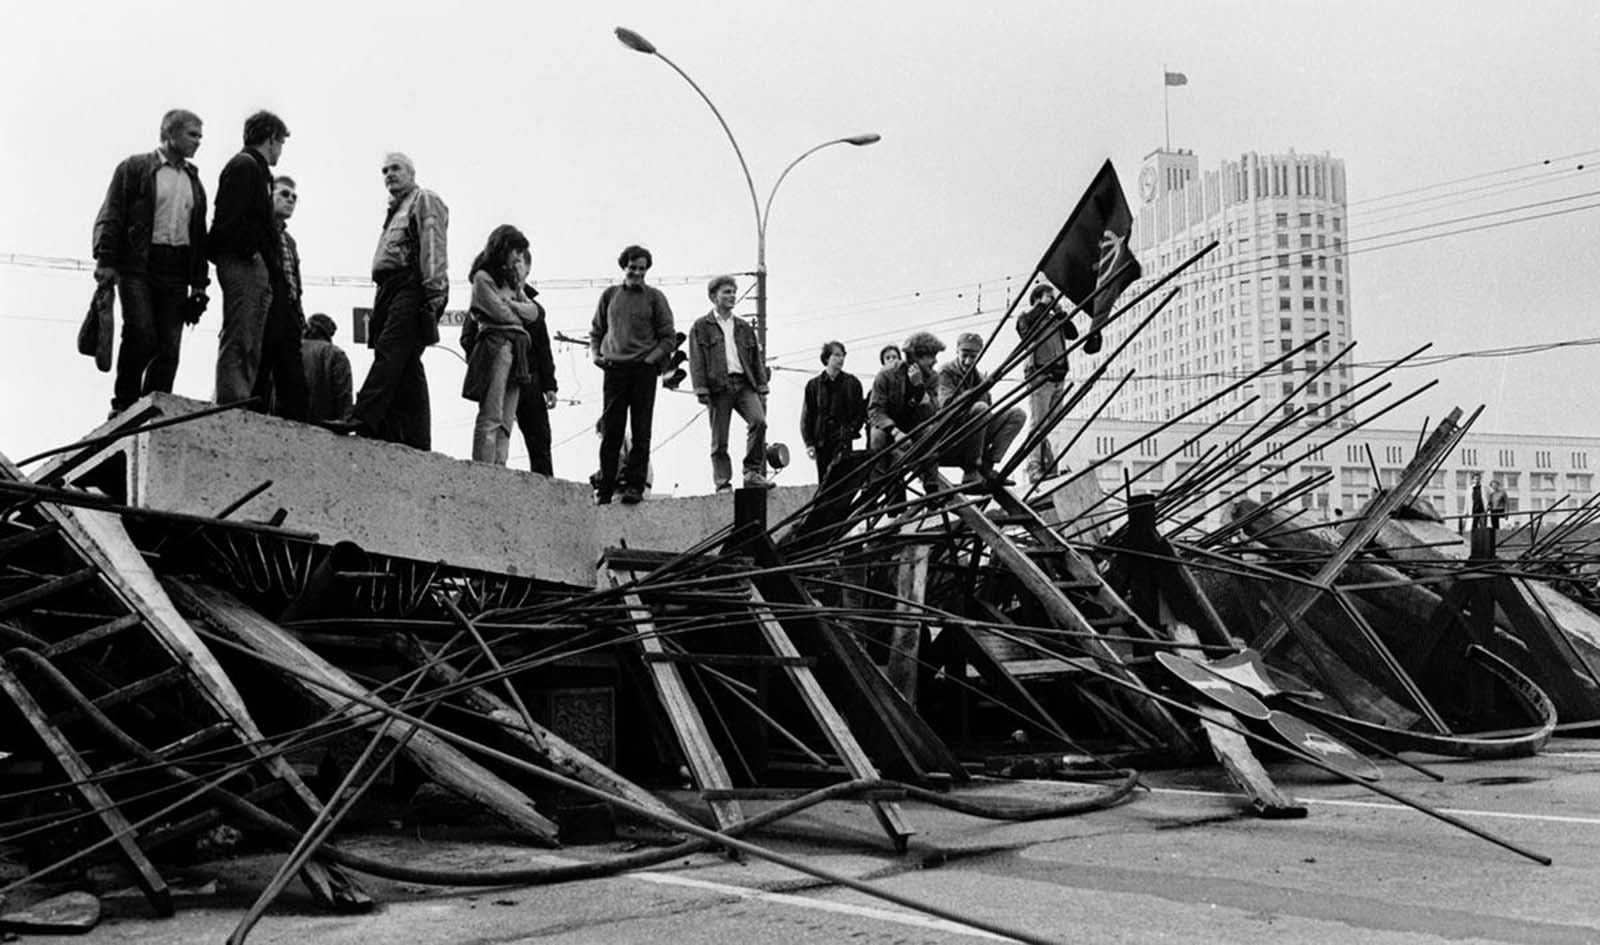 People stand on a barricade in front the Russian White House in Moscow on August 21, 1991.